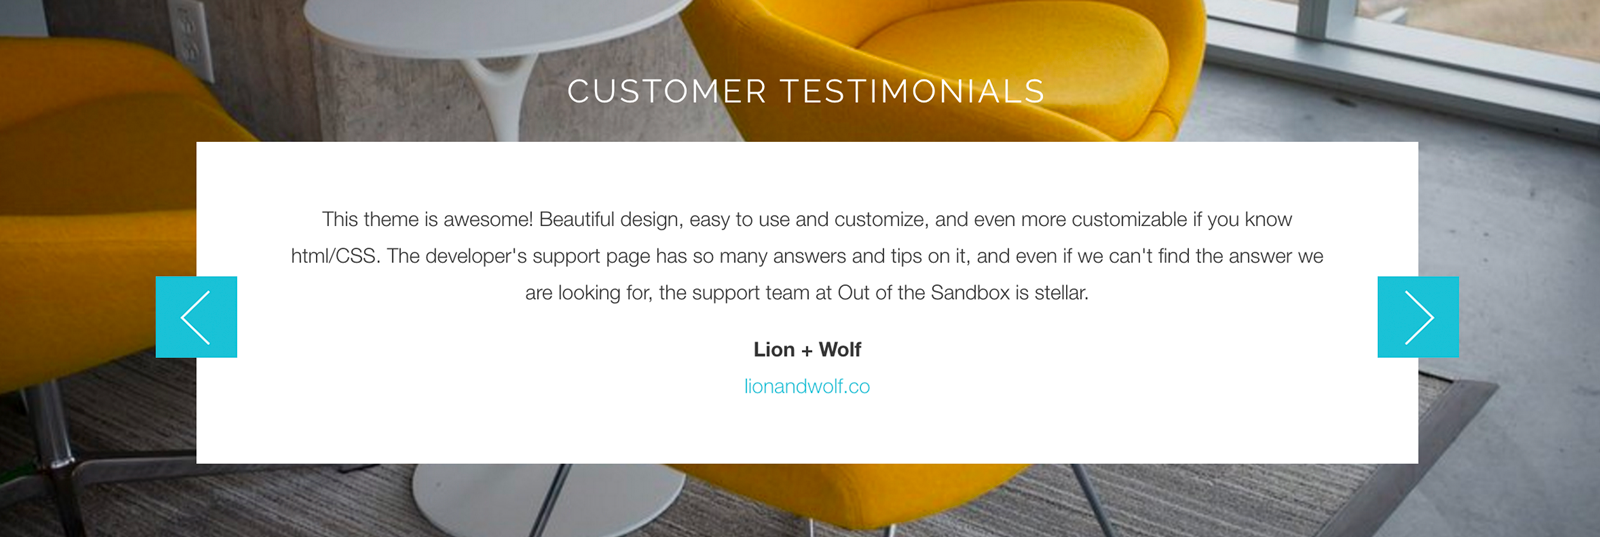 13 ways to use the testimonial section in your Shopify theme